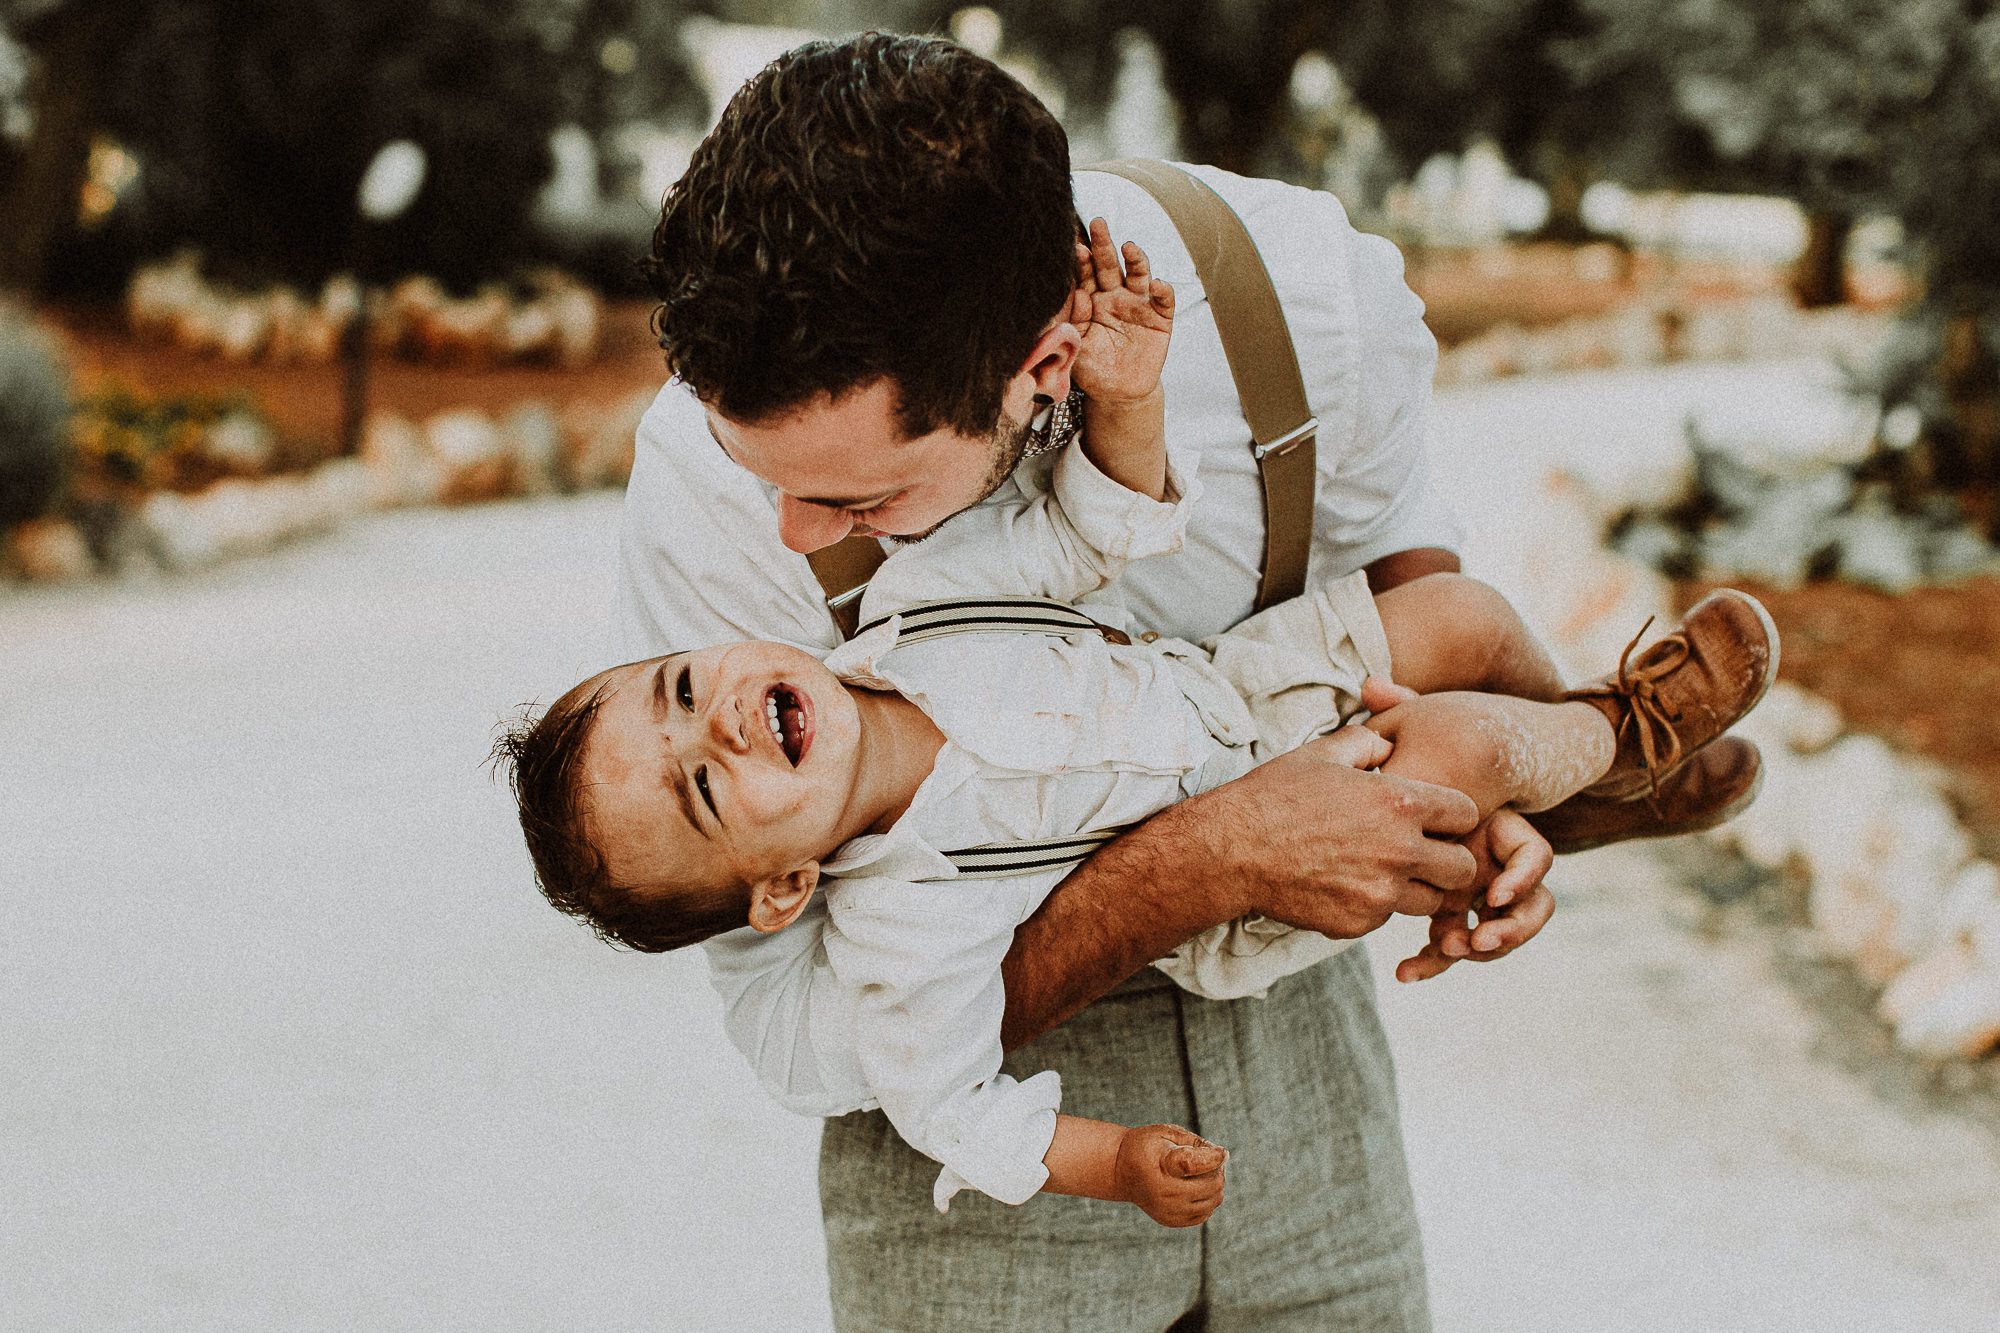 dad and son playing at the wedding-elopement-photographer-destination-puglia-boho-vintage-creative-intimate-288